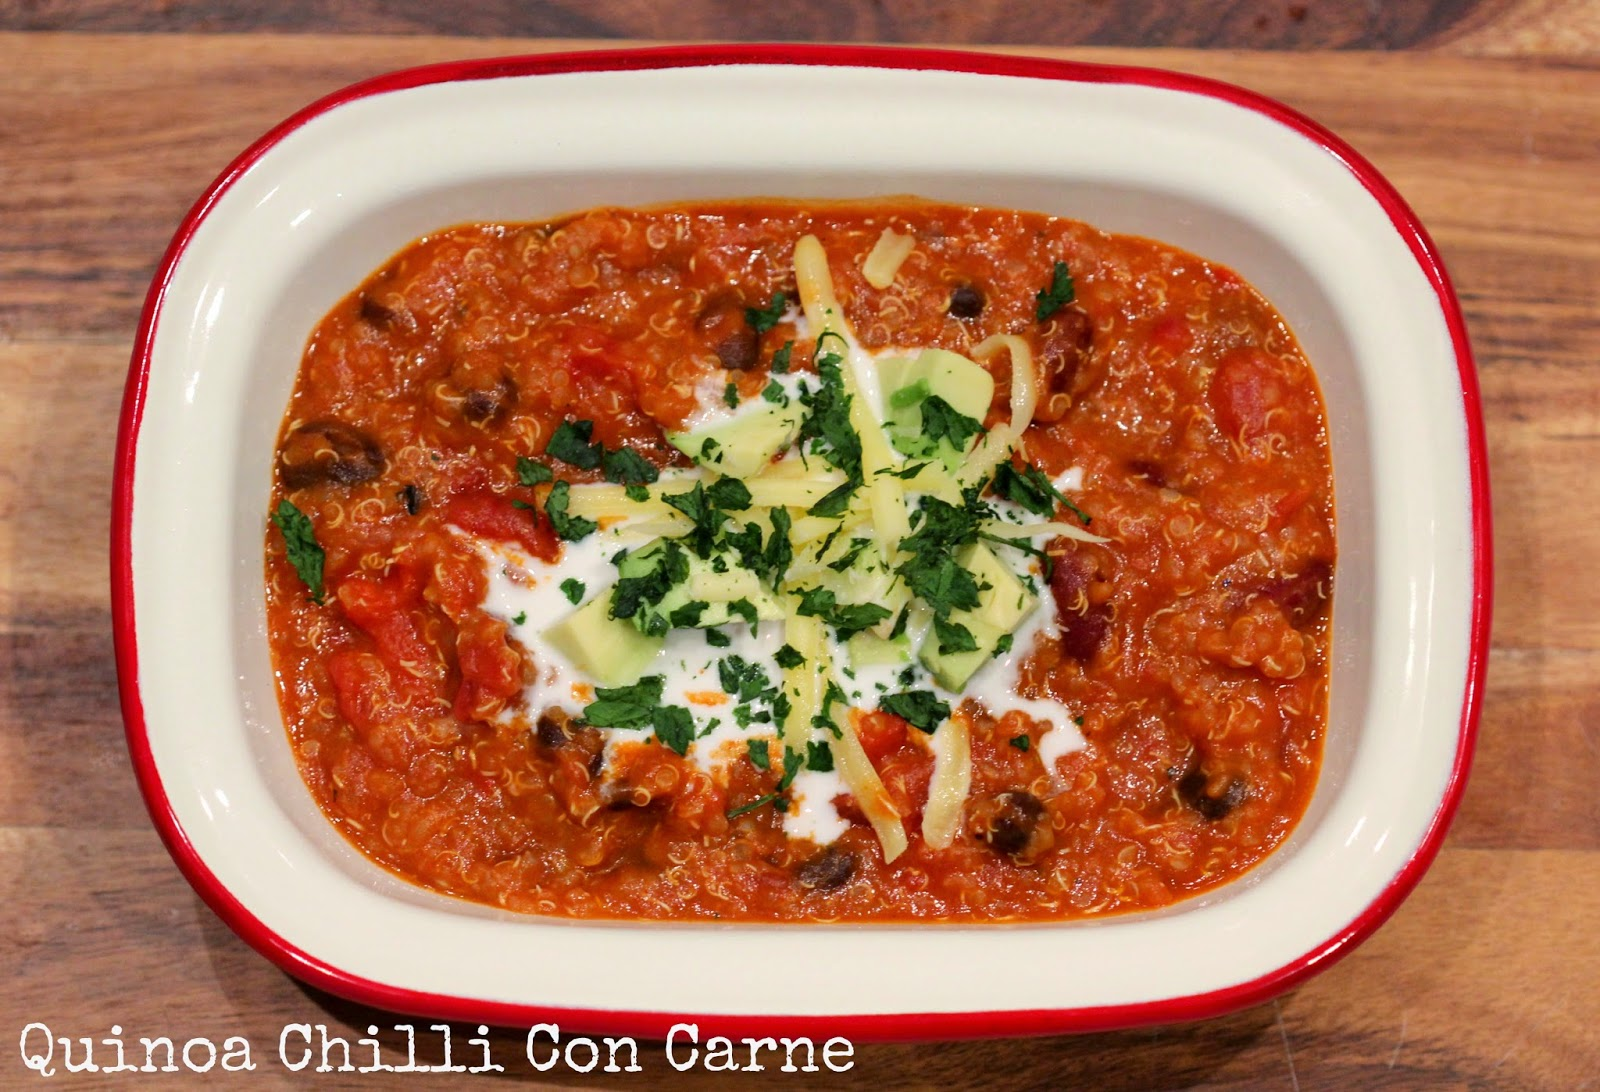 Quinoa, Chilli Con Carne, healthy, recipe, recipes, thermomix, healthy meals, vegetarian, meatless, protein, nutrition, health